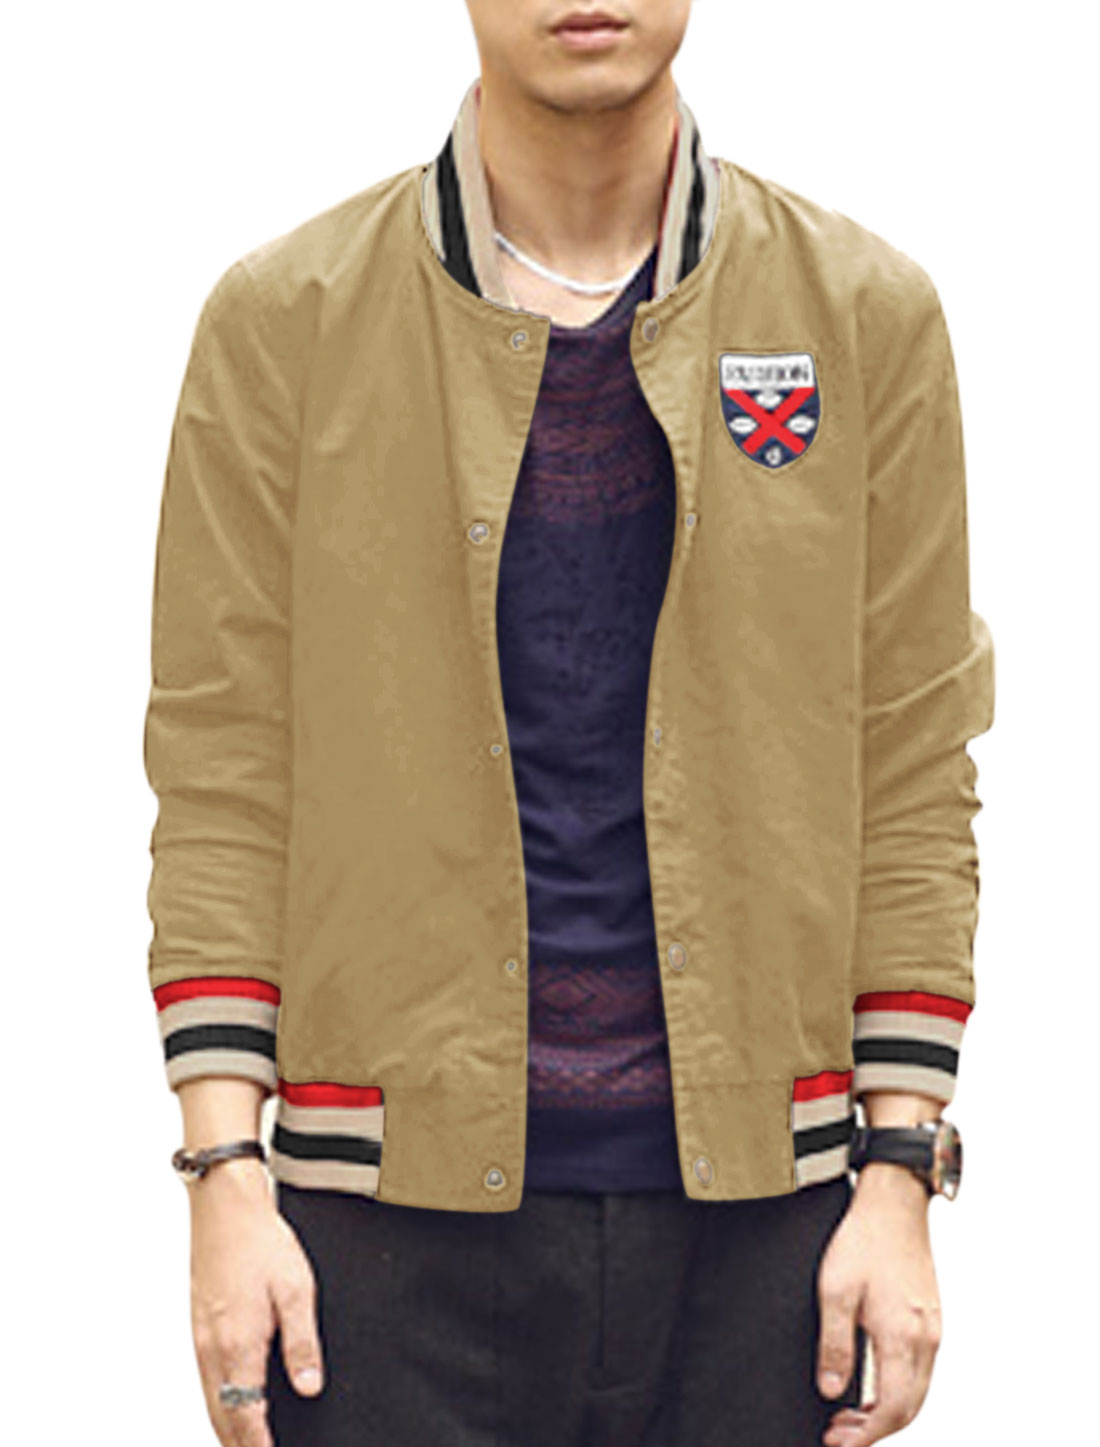 Men Ribbed Cuffs Map Pattern Lining Badge Applique Canvas Jacket Khaki M